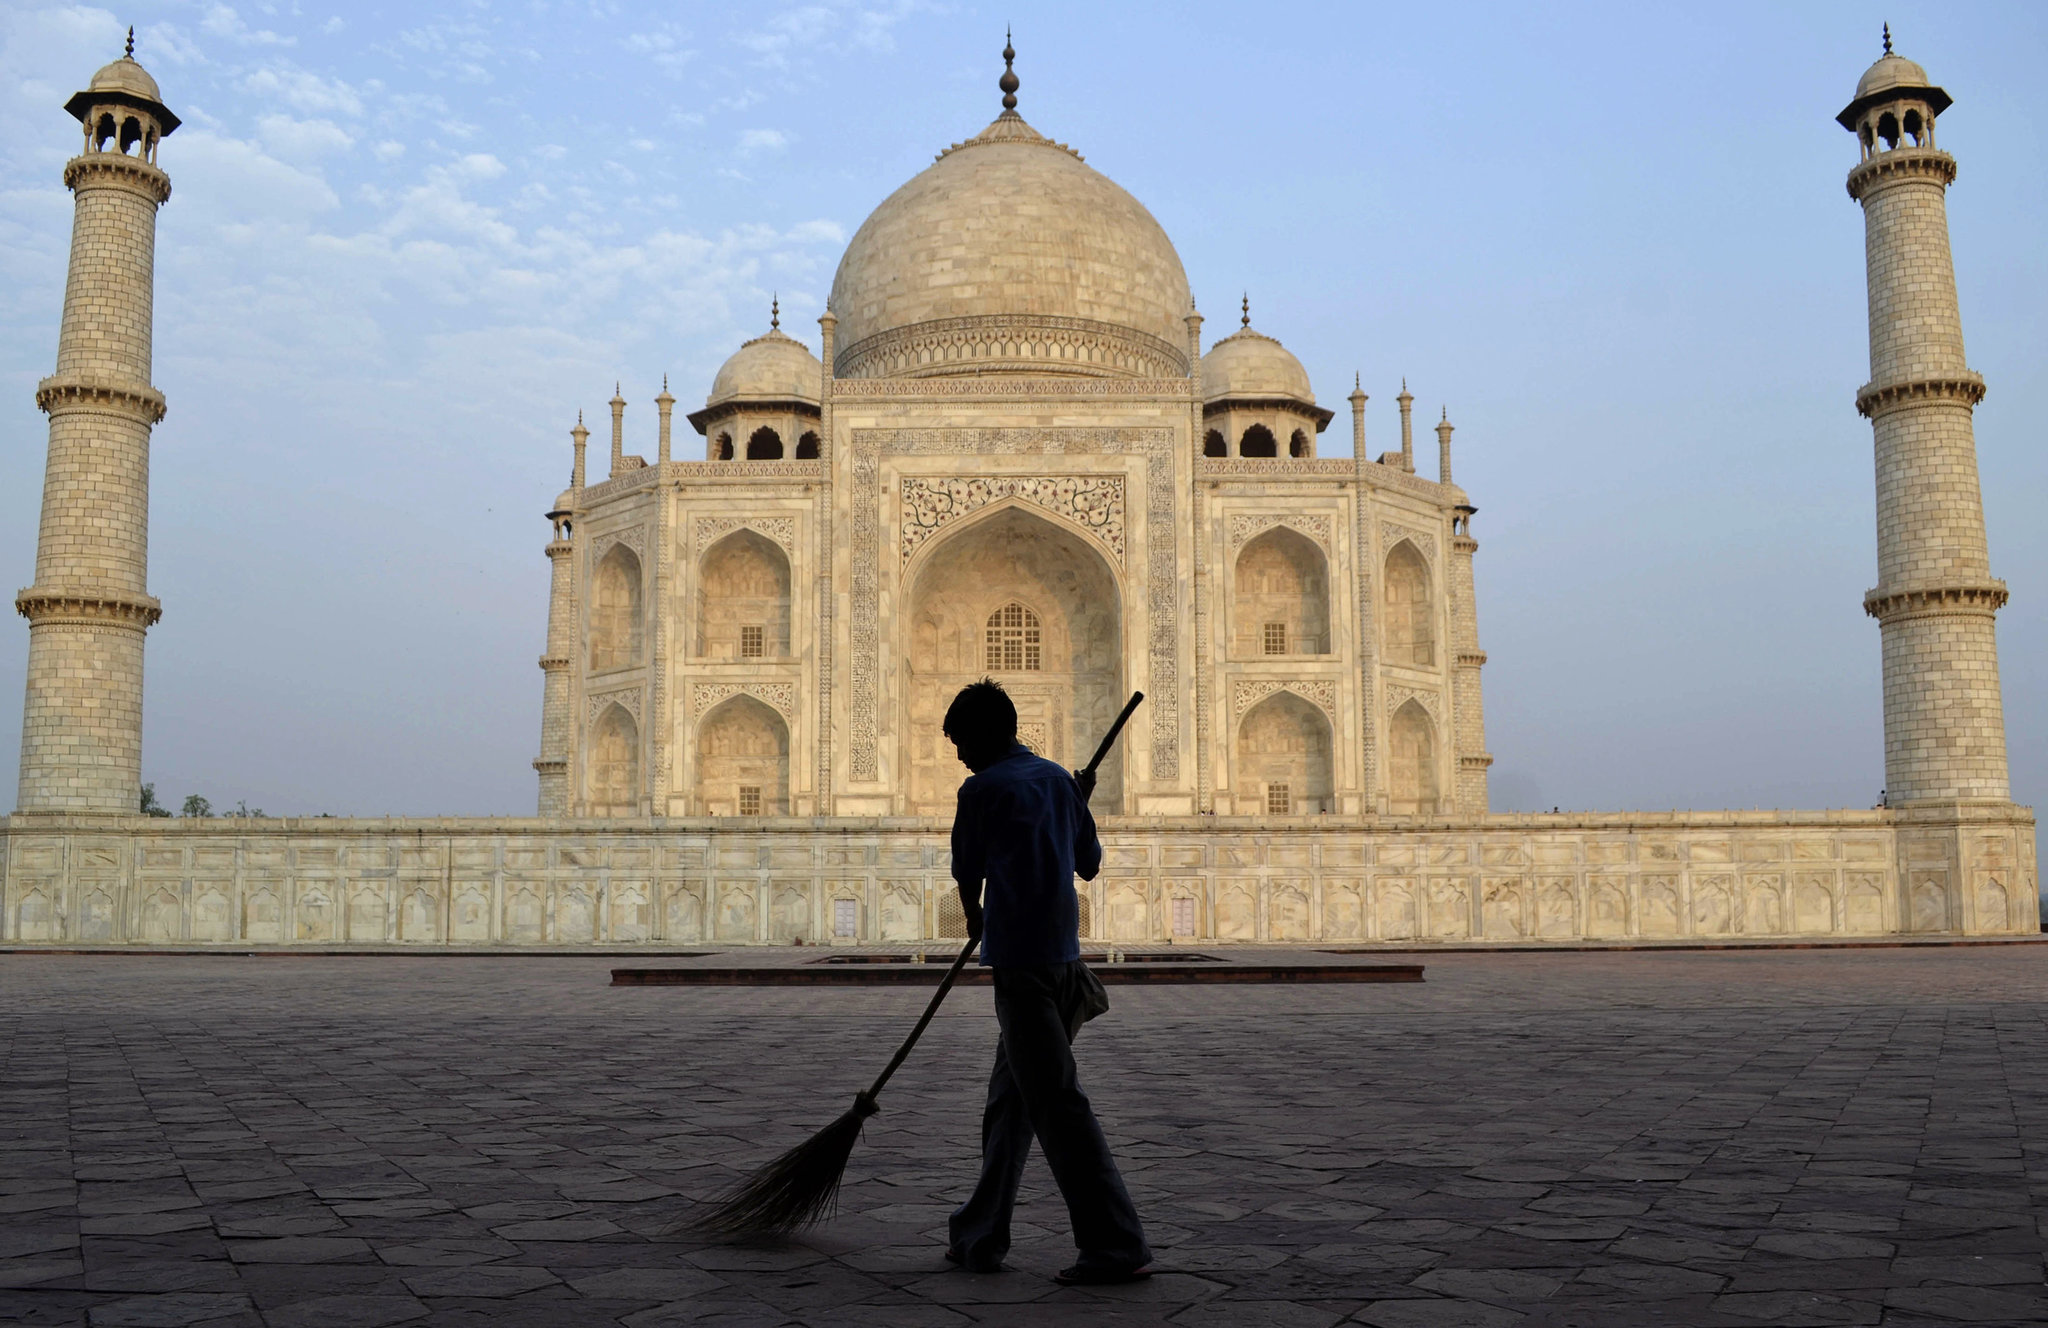 Taj Mahal closes for rest of the month due to coronavirus